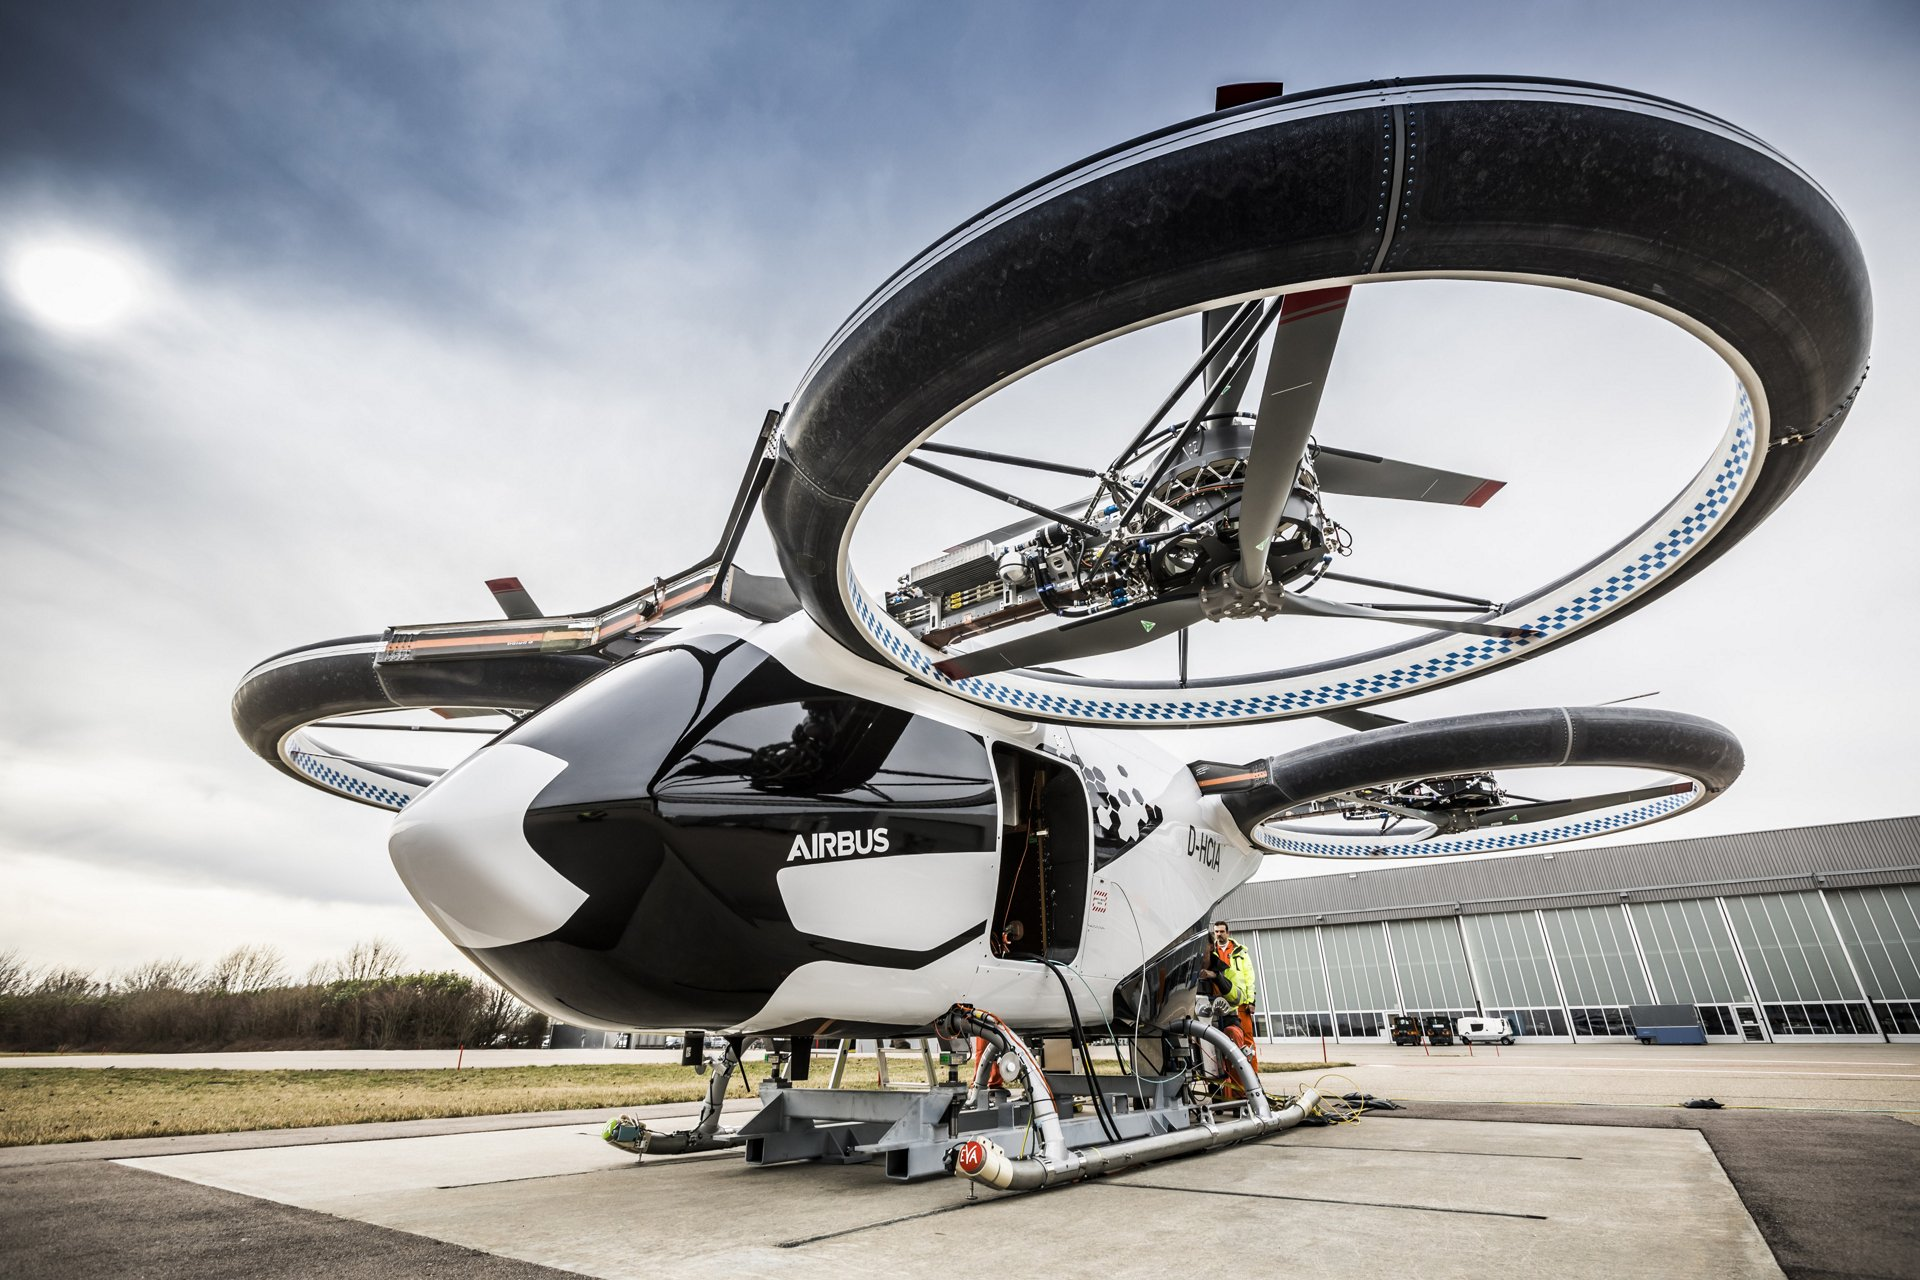 An on-ground photo of the all-electric, four-seat multicopter demonstrator called CityAirbus.